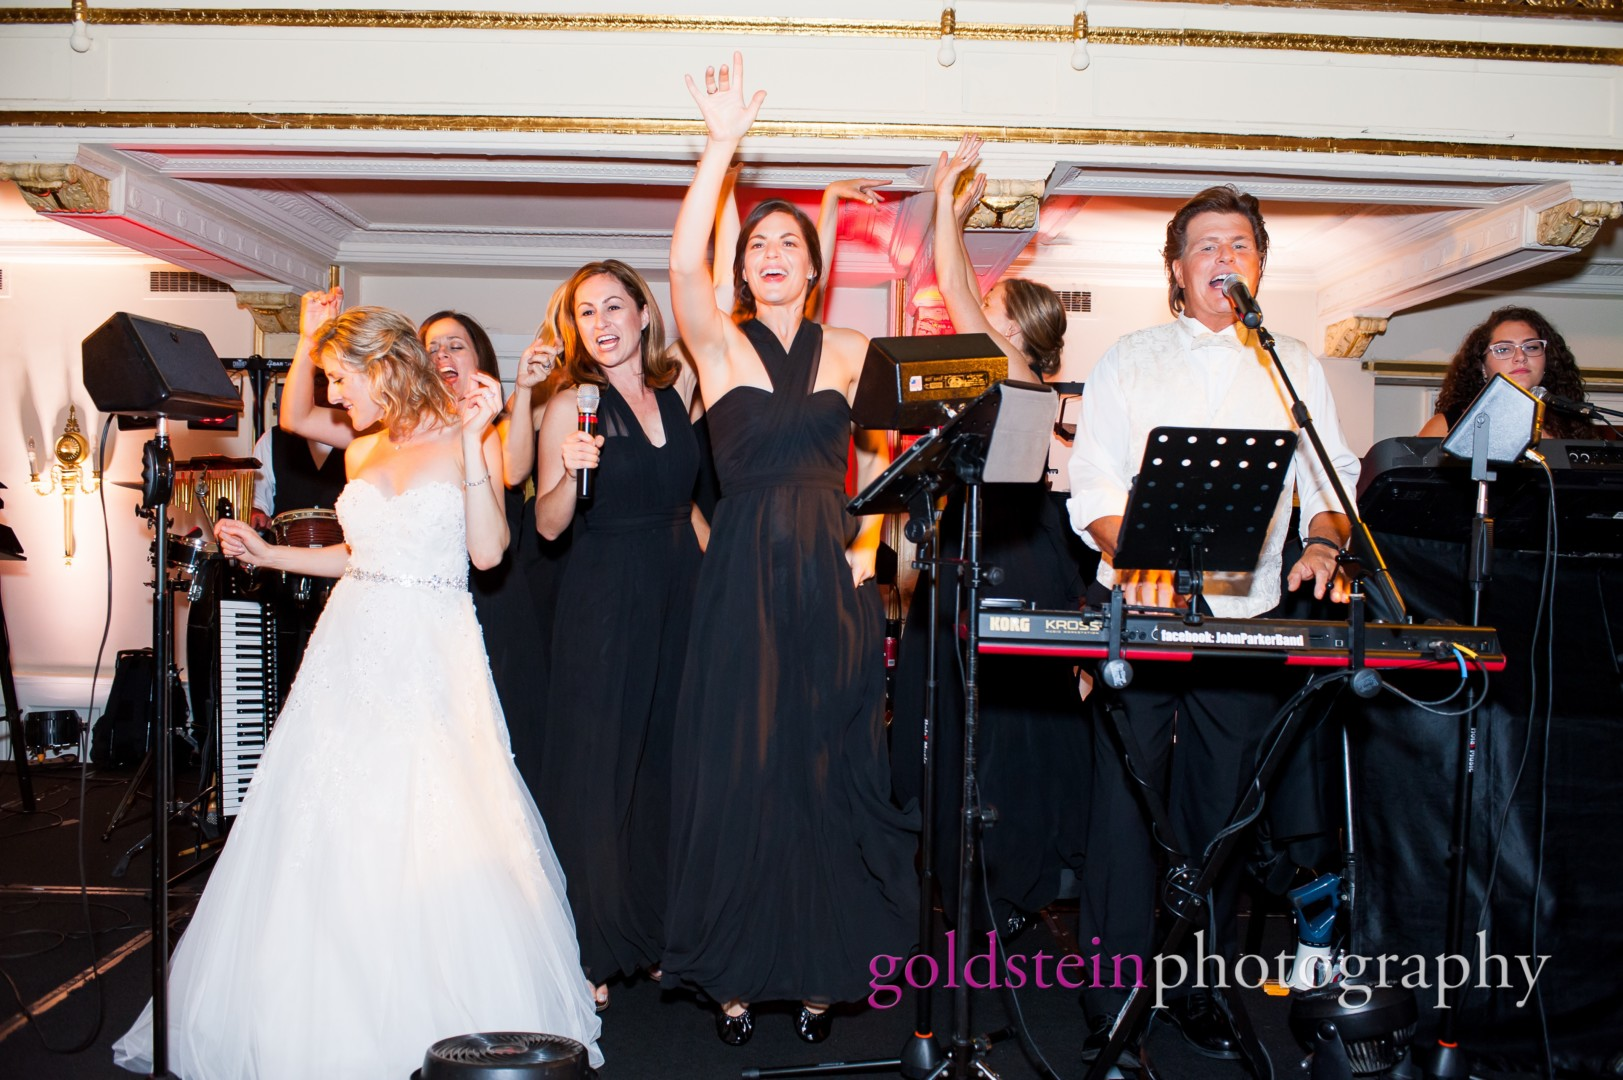 John Parker Band @ William Penn Hotel with Bridesmaids and Bride on stage with band